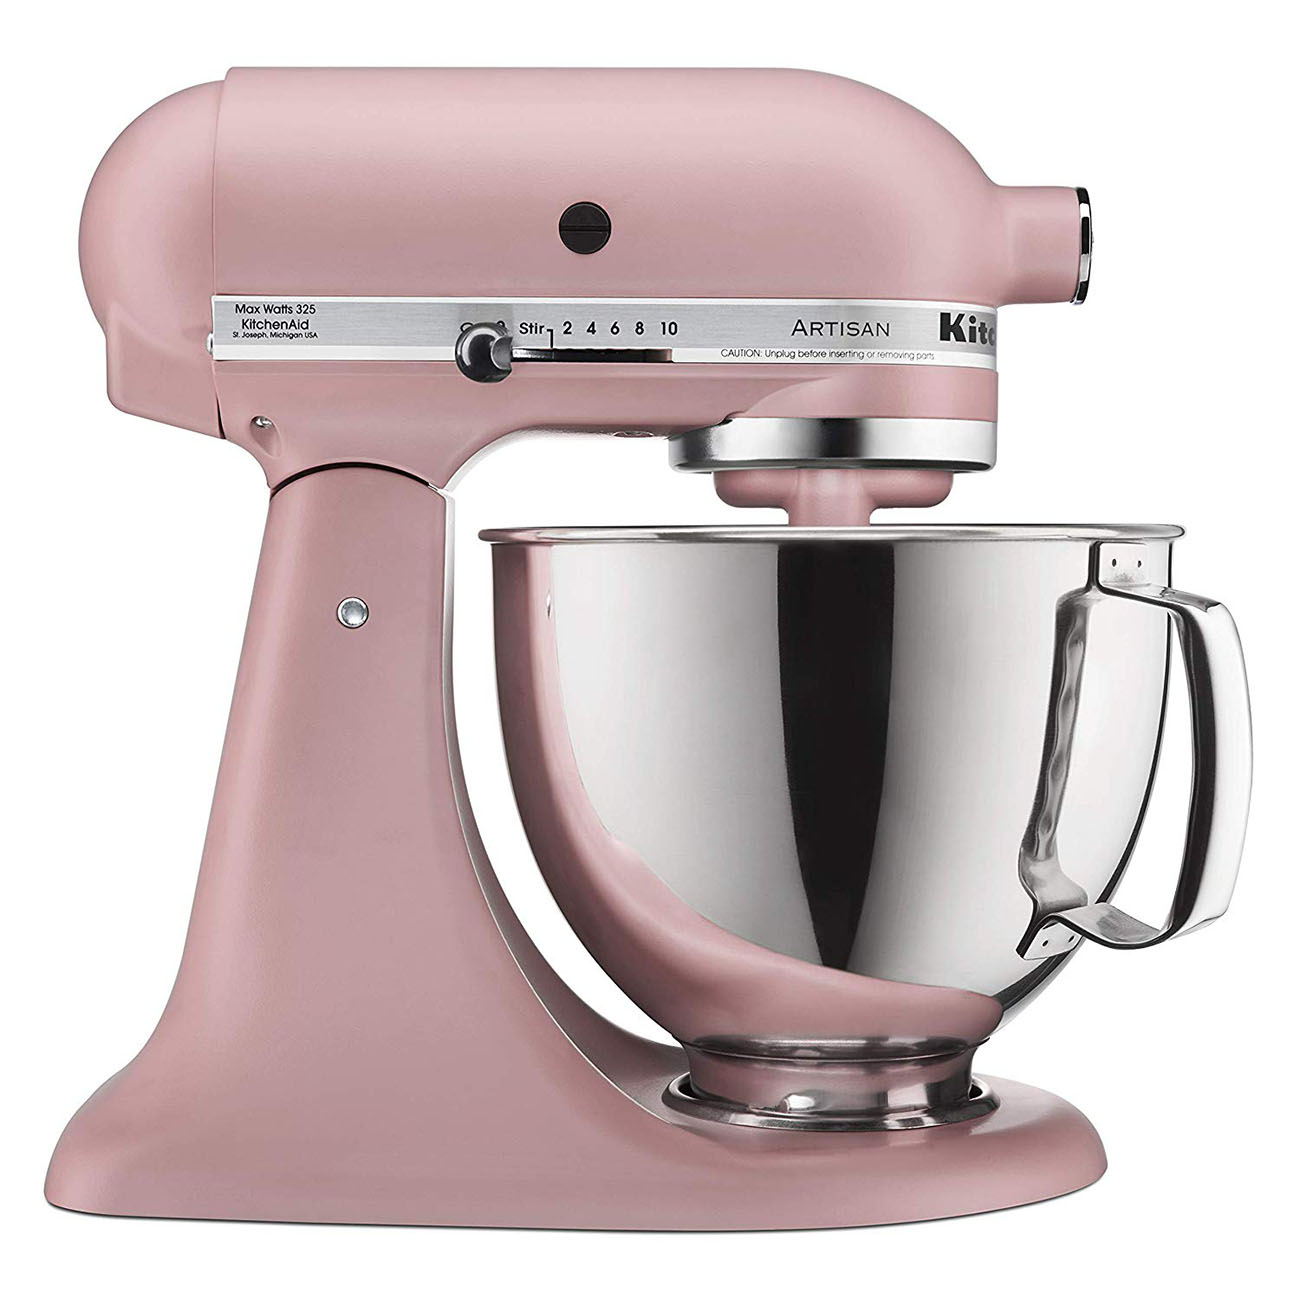 KitchenAid Artisan Stand Mixer 5-quart in Dried Rose